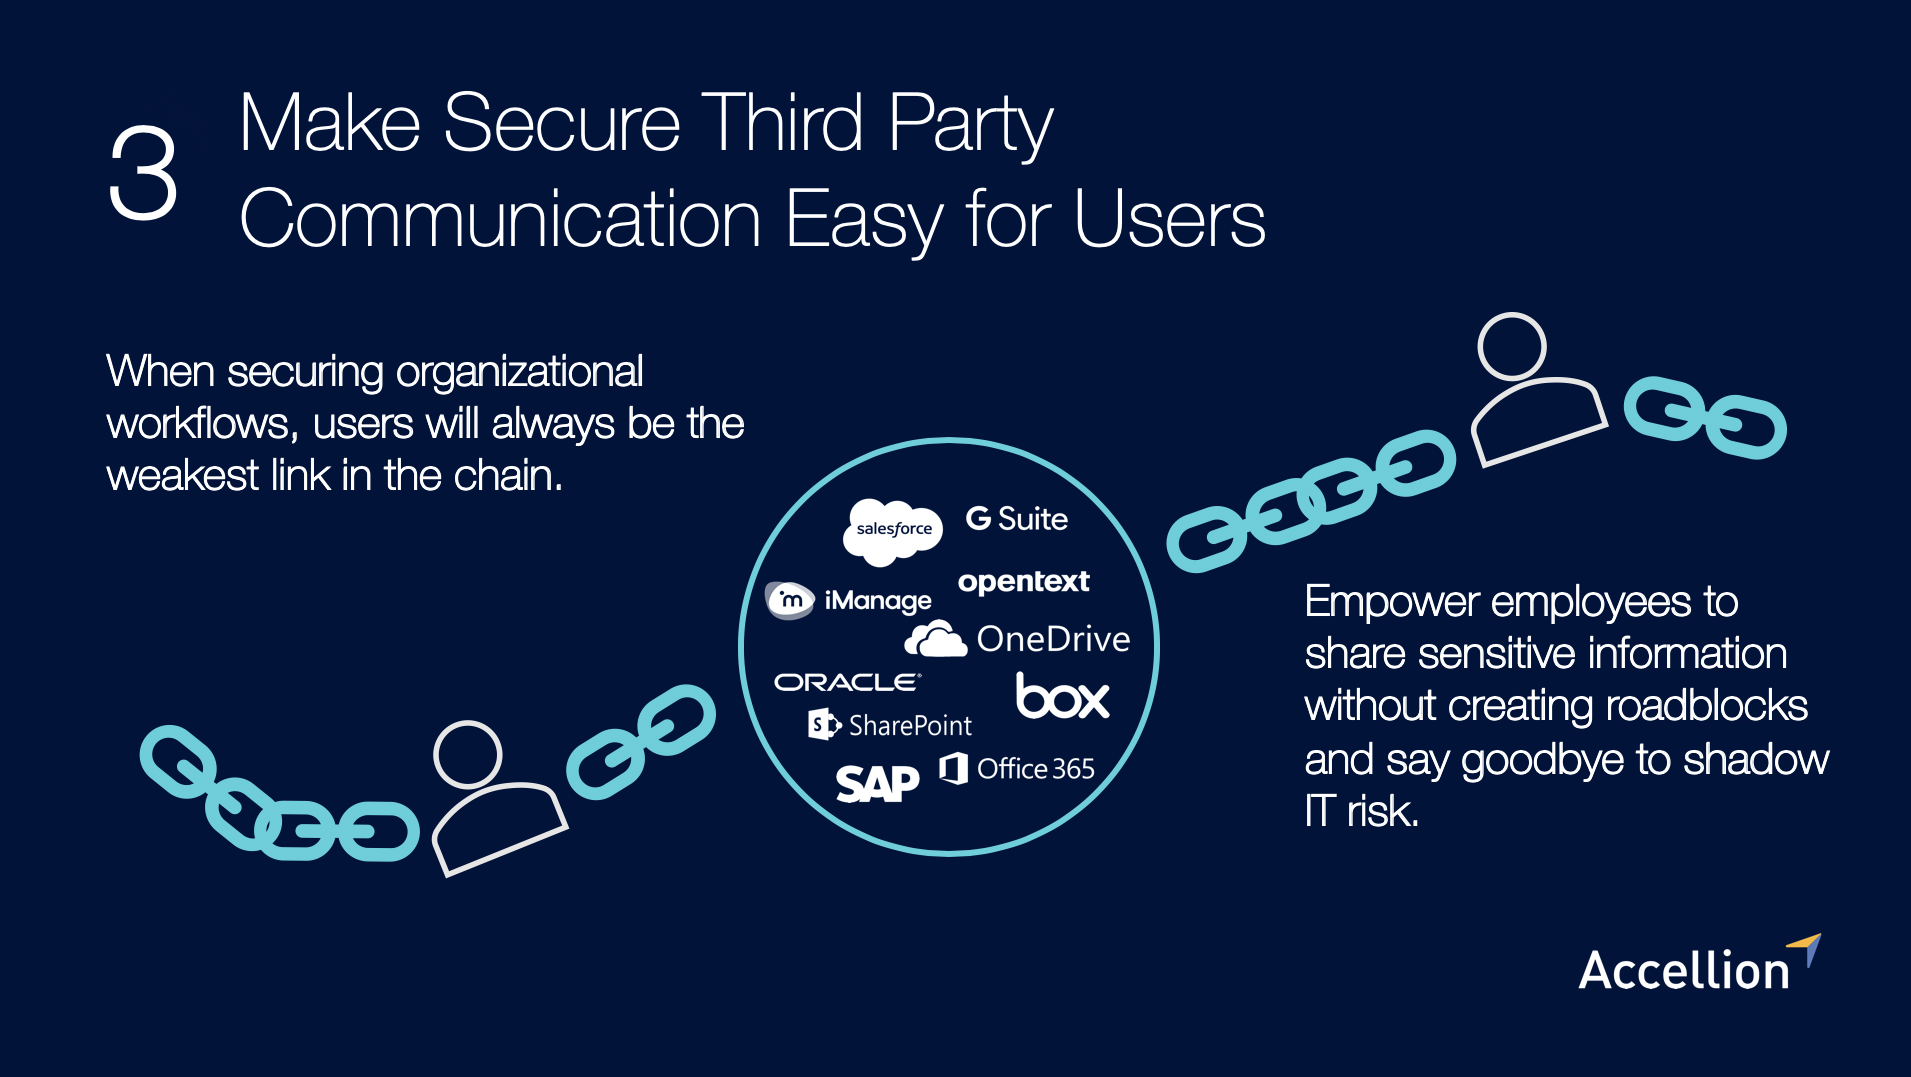 Make secure third party communication easy for users